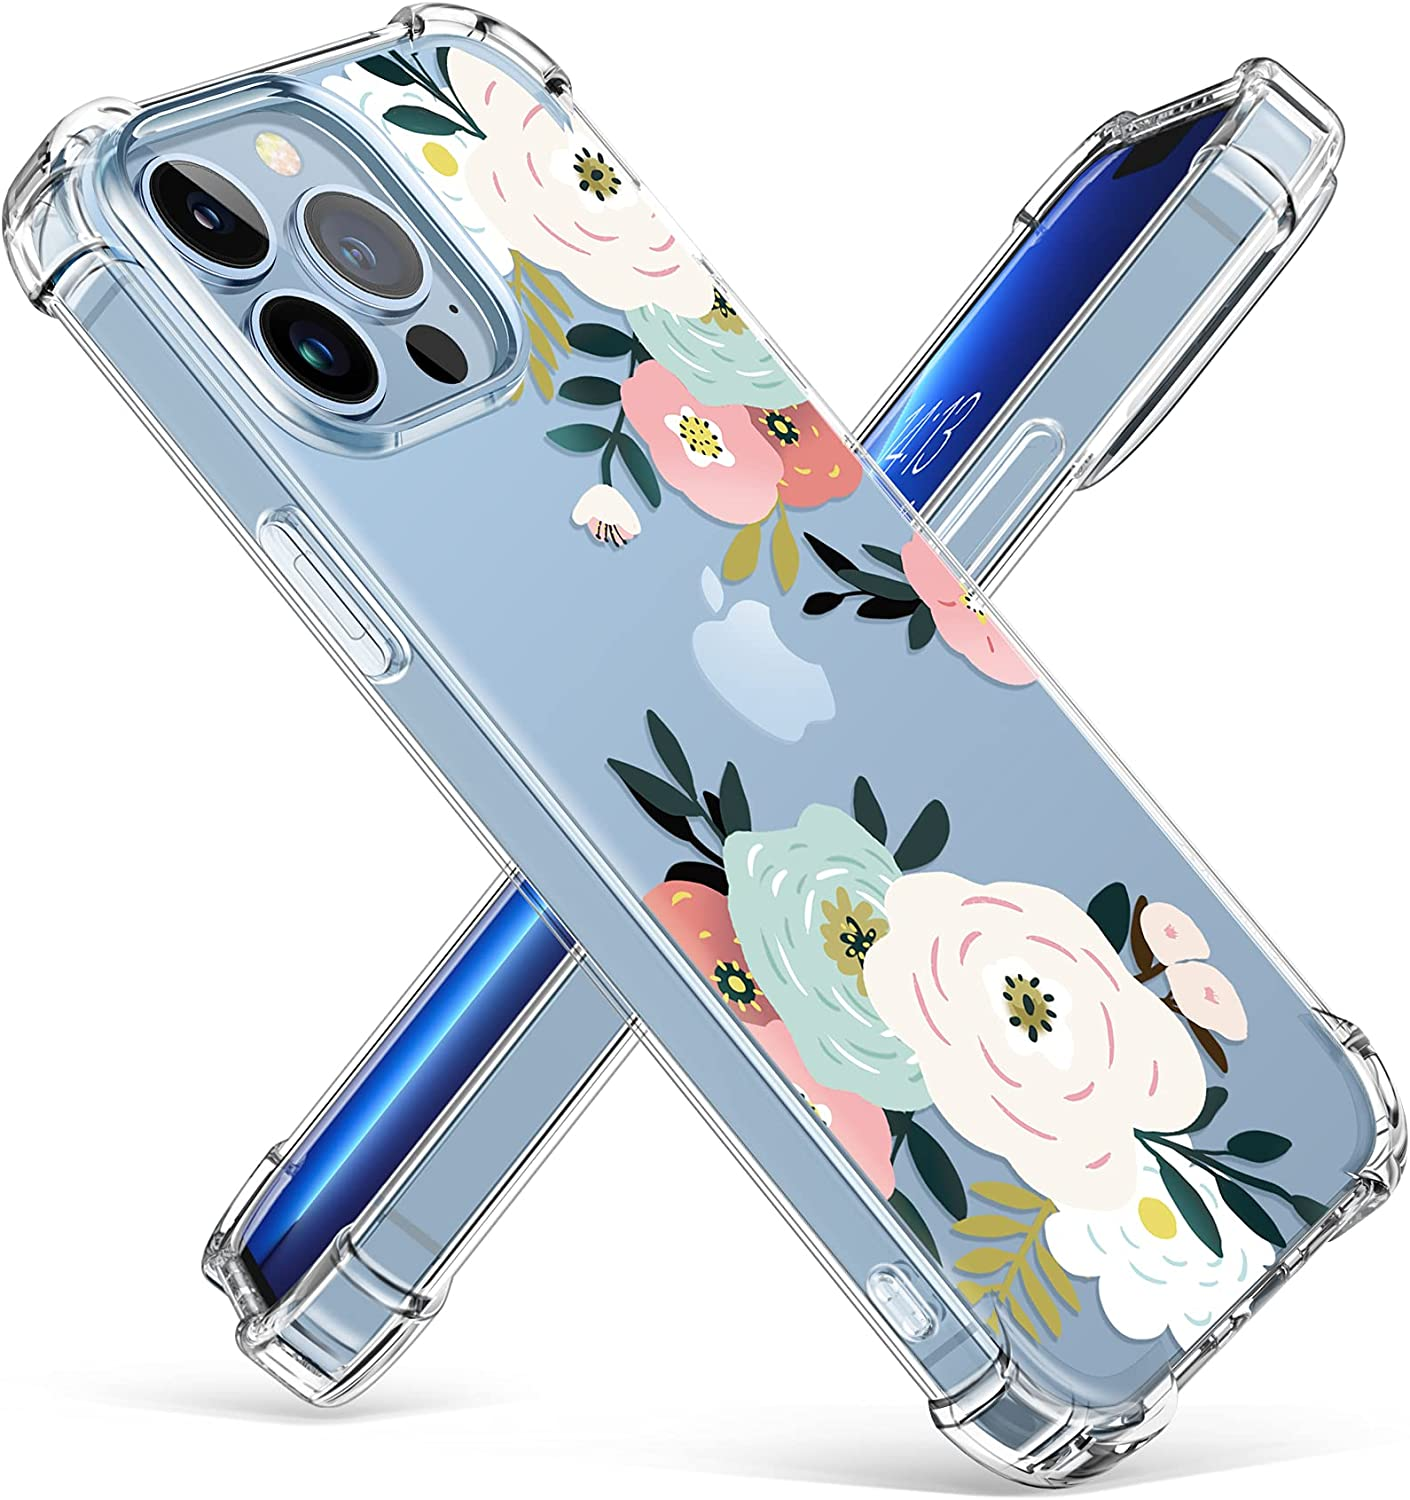 GVIEWIN Case Compatible with iPhone 13 Pro Max 6.7 Inch 2021, Clear Floral Soft & Flexible TPU Shockproof Protective Cover for Women Girls, Flower Pattern Design Phone Case (Abundant Blossom/White)